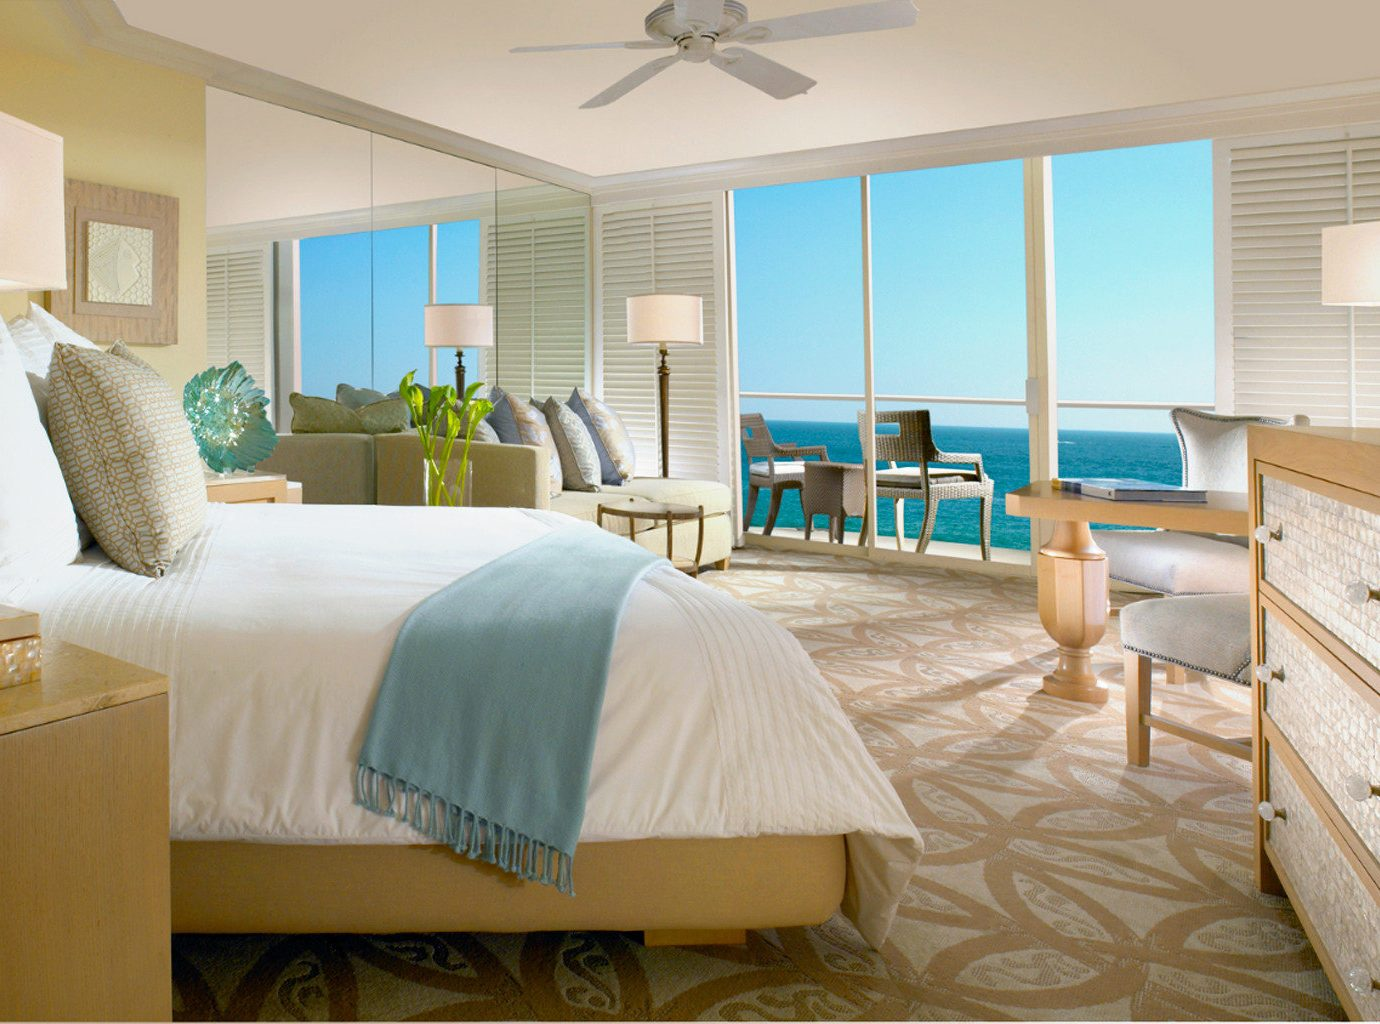 Balcony Beachfront Bedroom Elegant Hotels Living Modern Ocean Scenic views Waterfront indoor bed wall floor ceiling room window property Suite estate home real estate interior design cottage living room condominium apartment Villa furniture